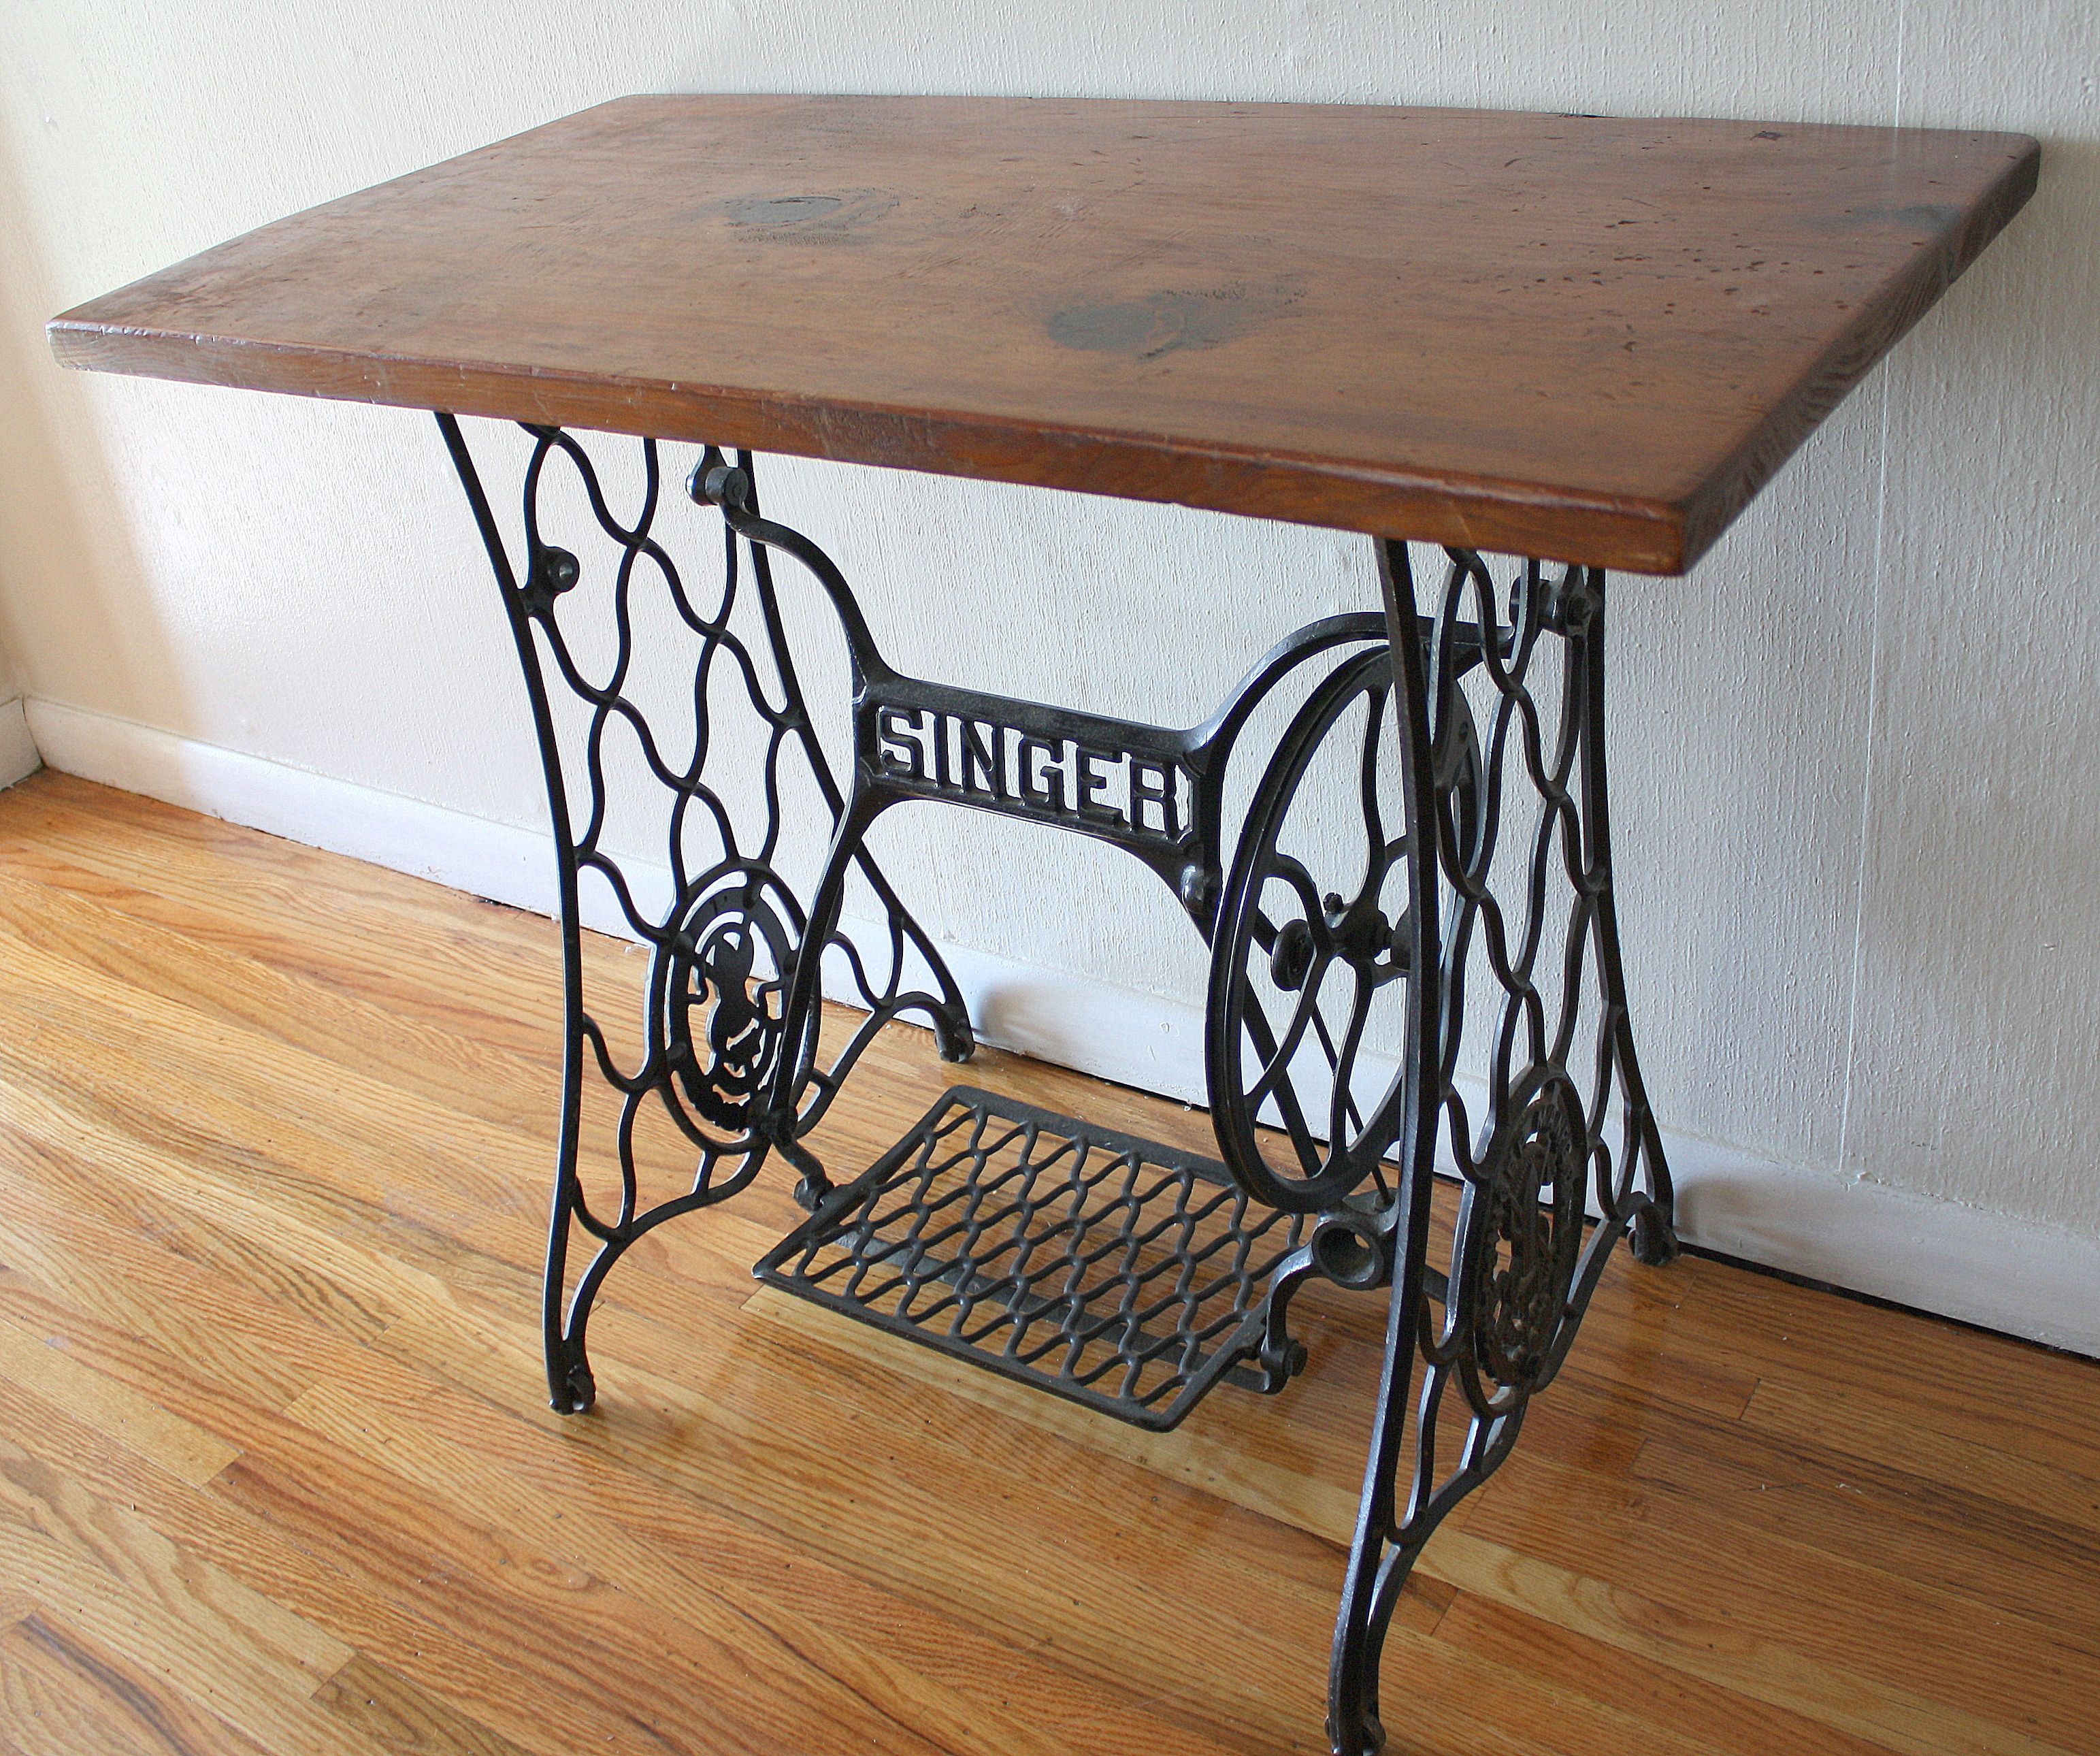 Incroyable Antique Singer Sewing Machine Iron Table Base With Wood Top .